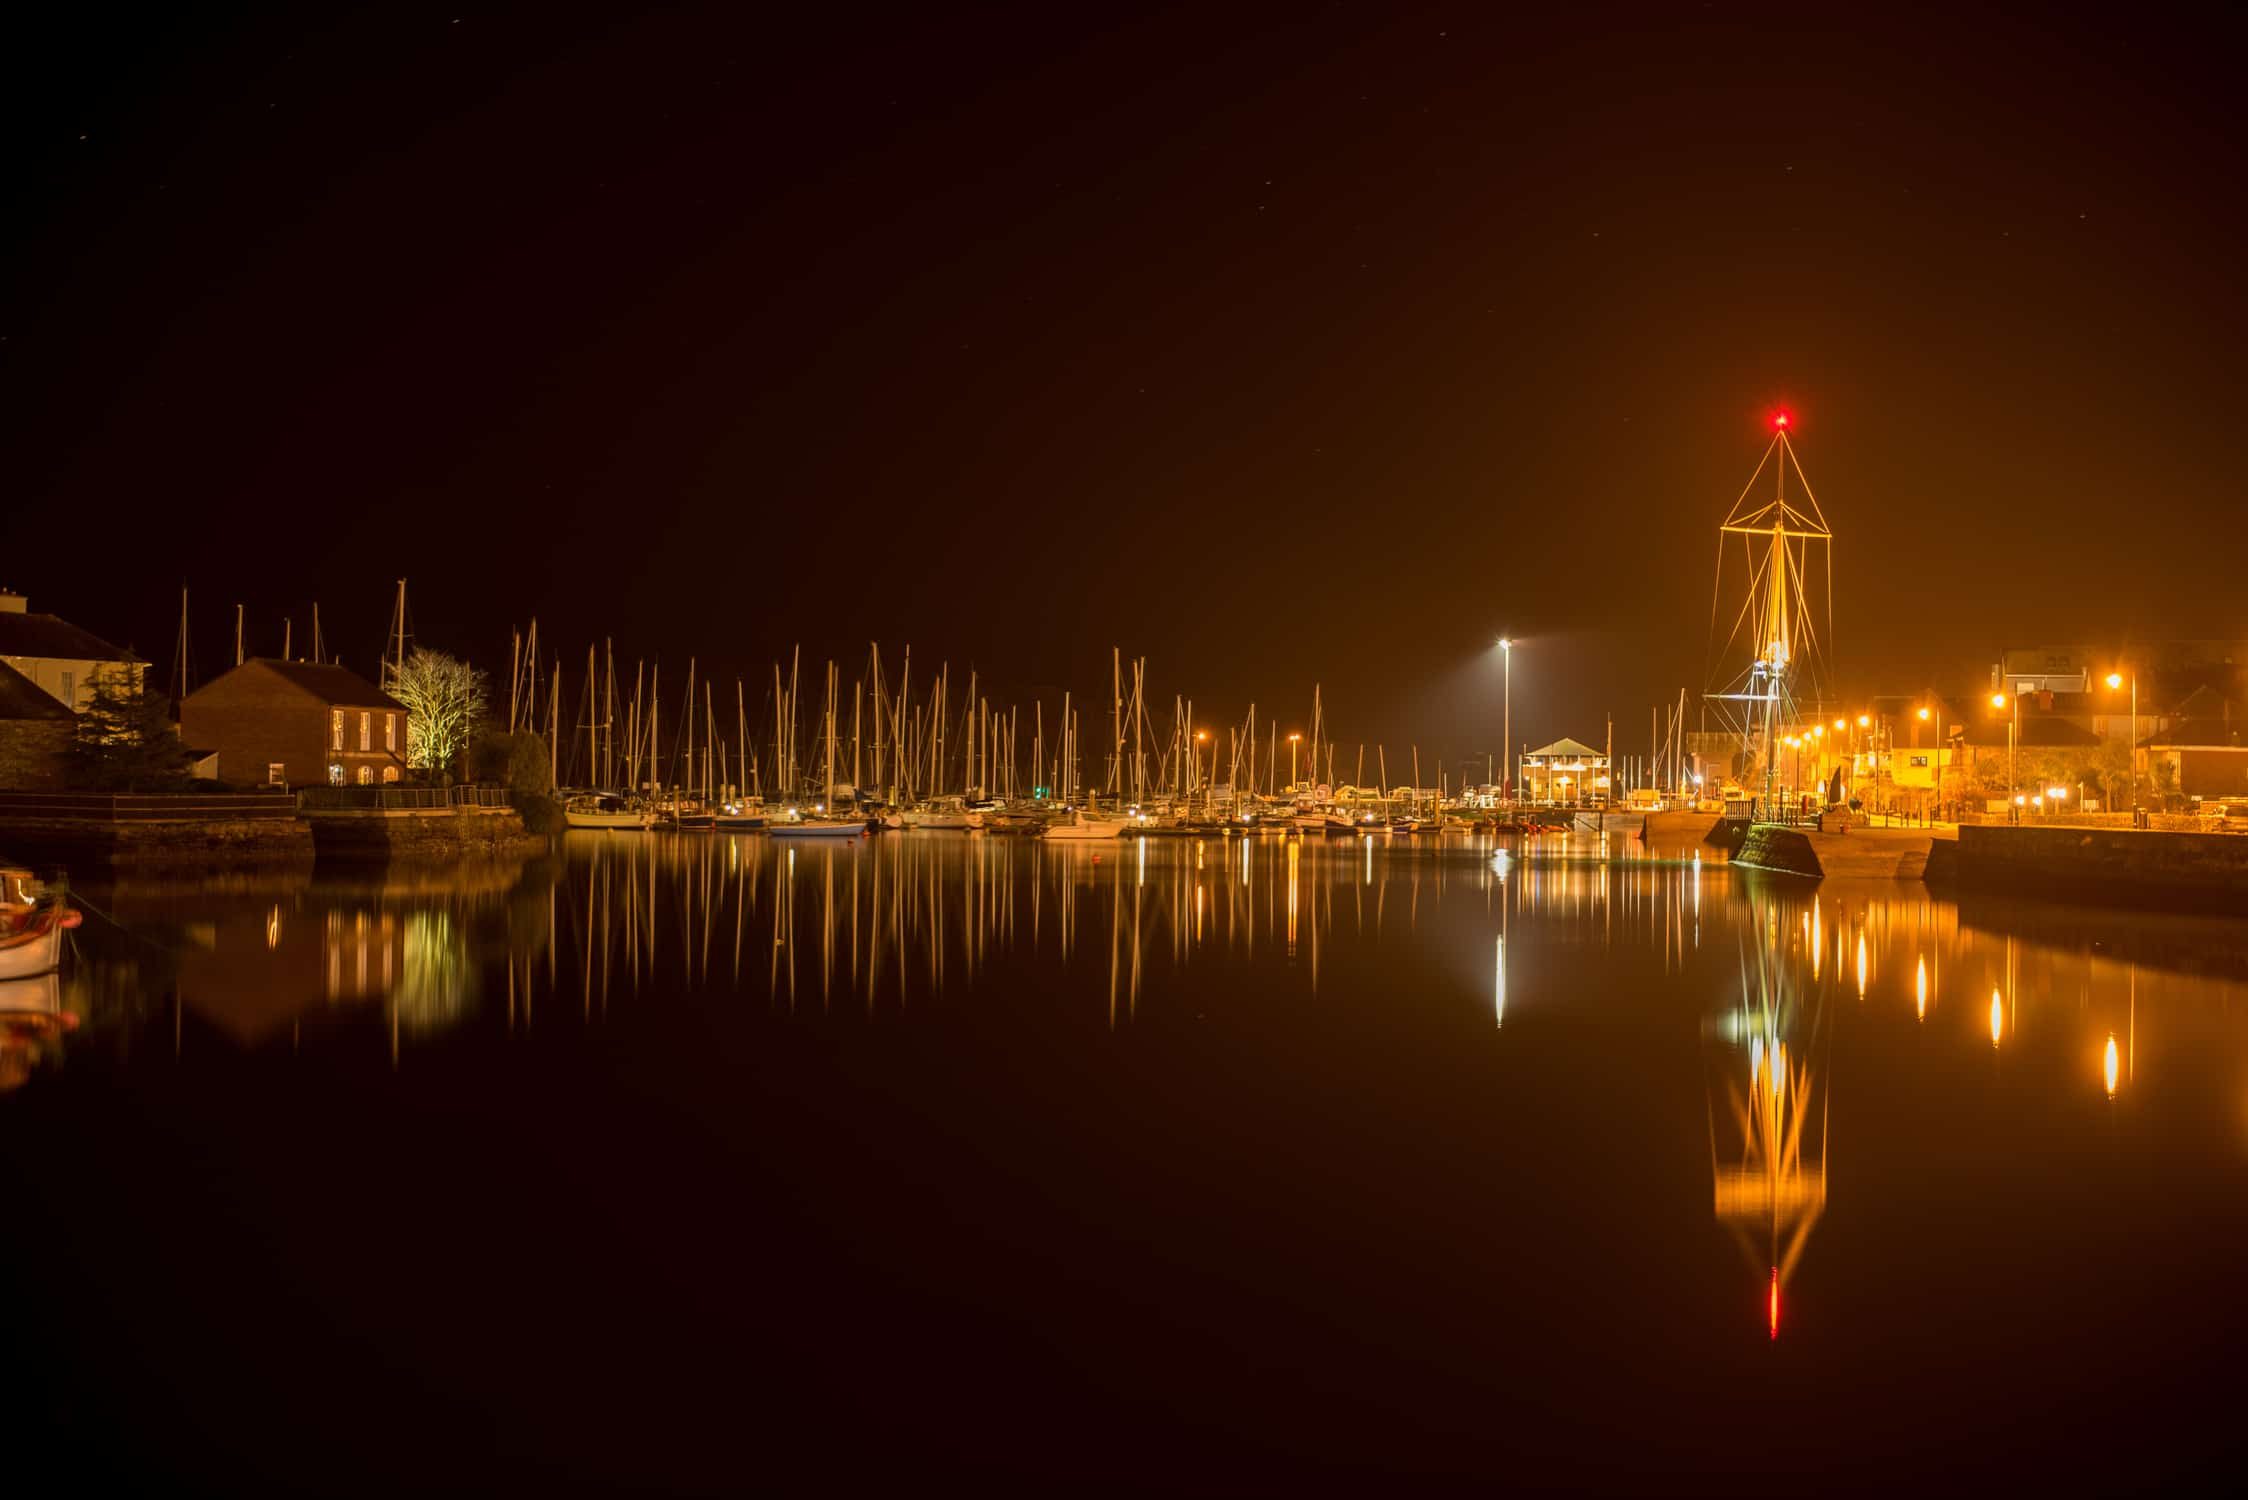 Kinsale night time photography